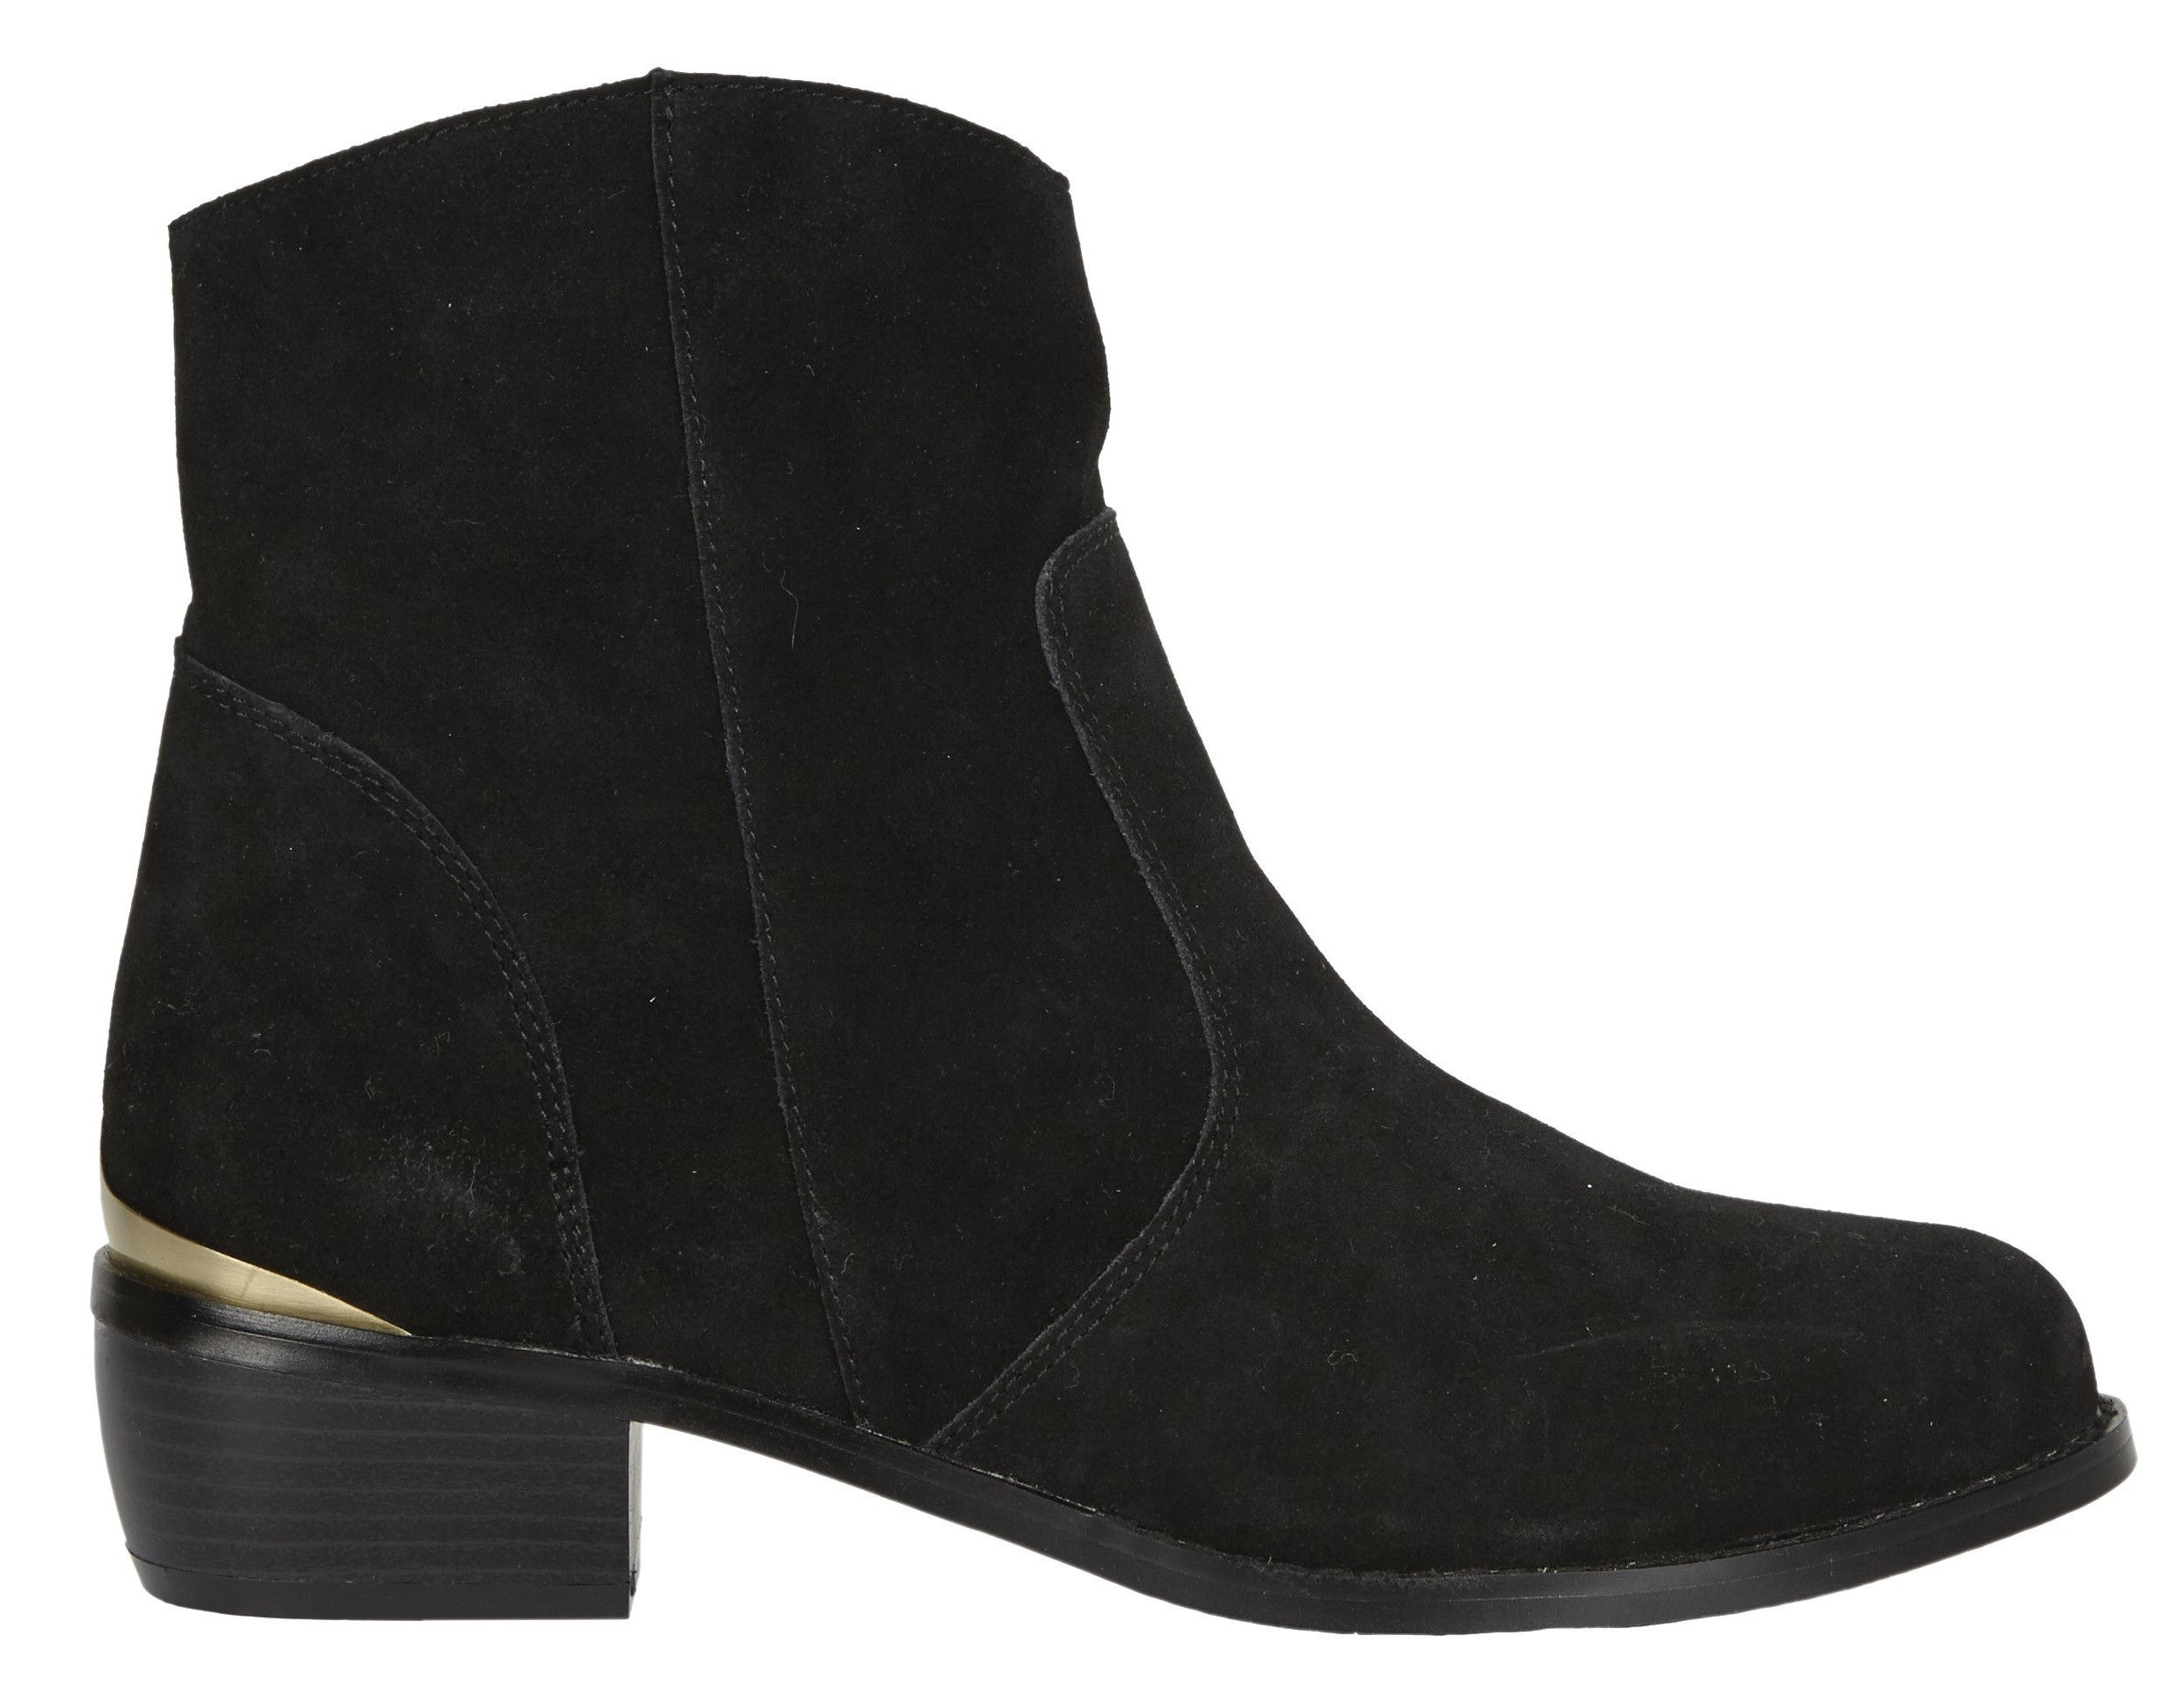 Salucci Collection Suede Ankle Boot, $149.99